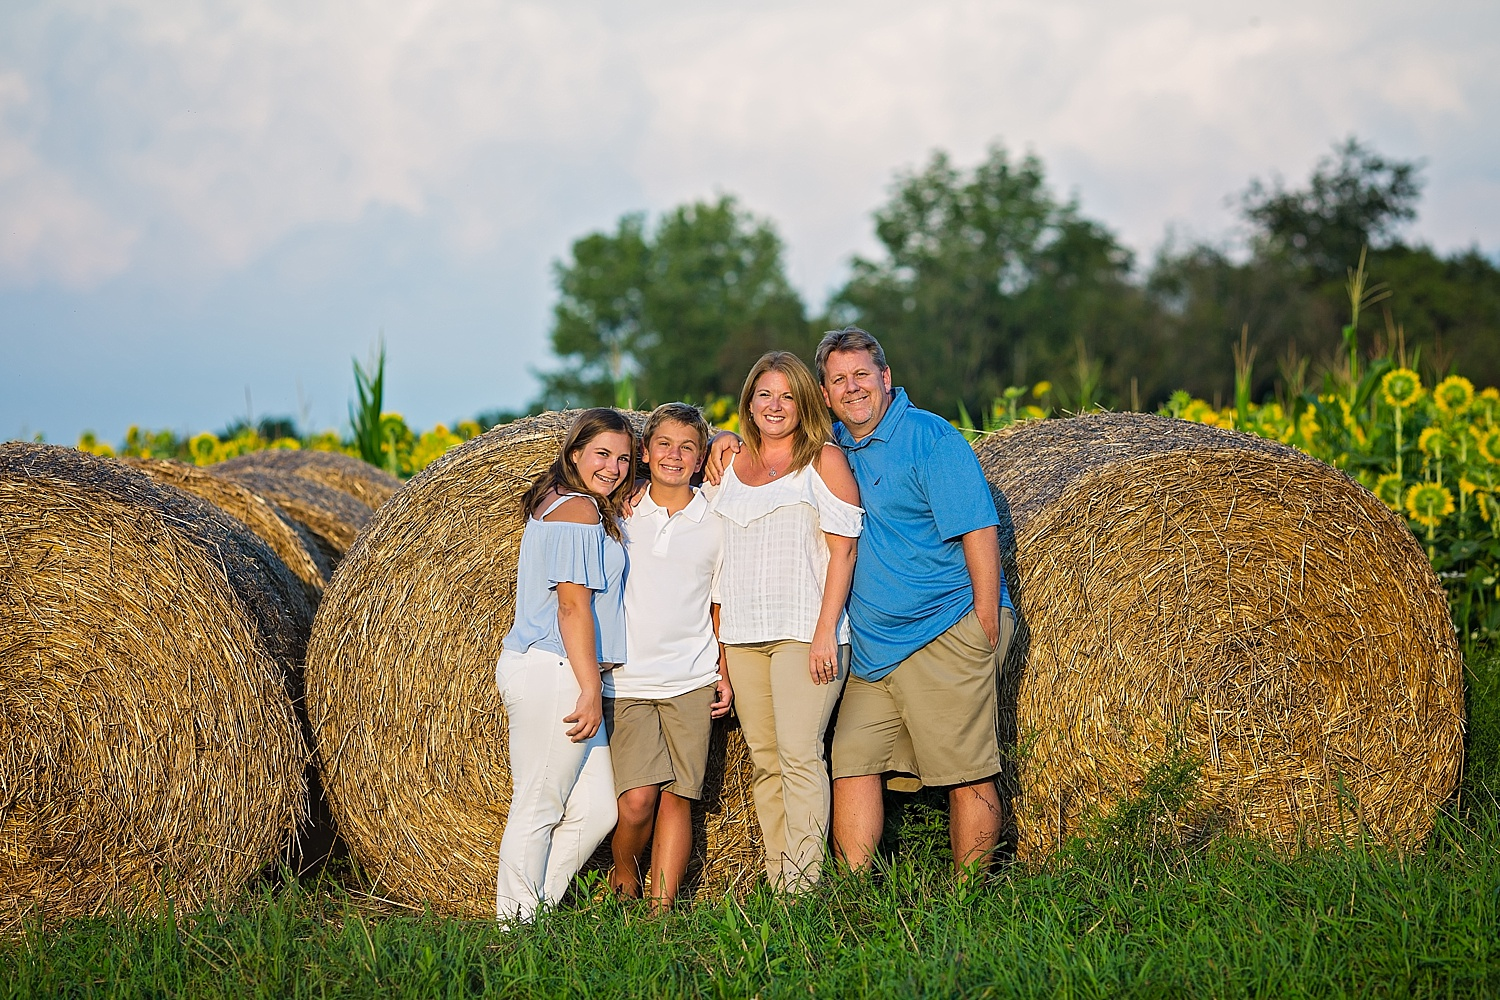 Berks County Blue Marsh Lake Sunflower Field Family Photographer